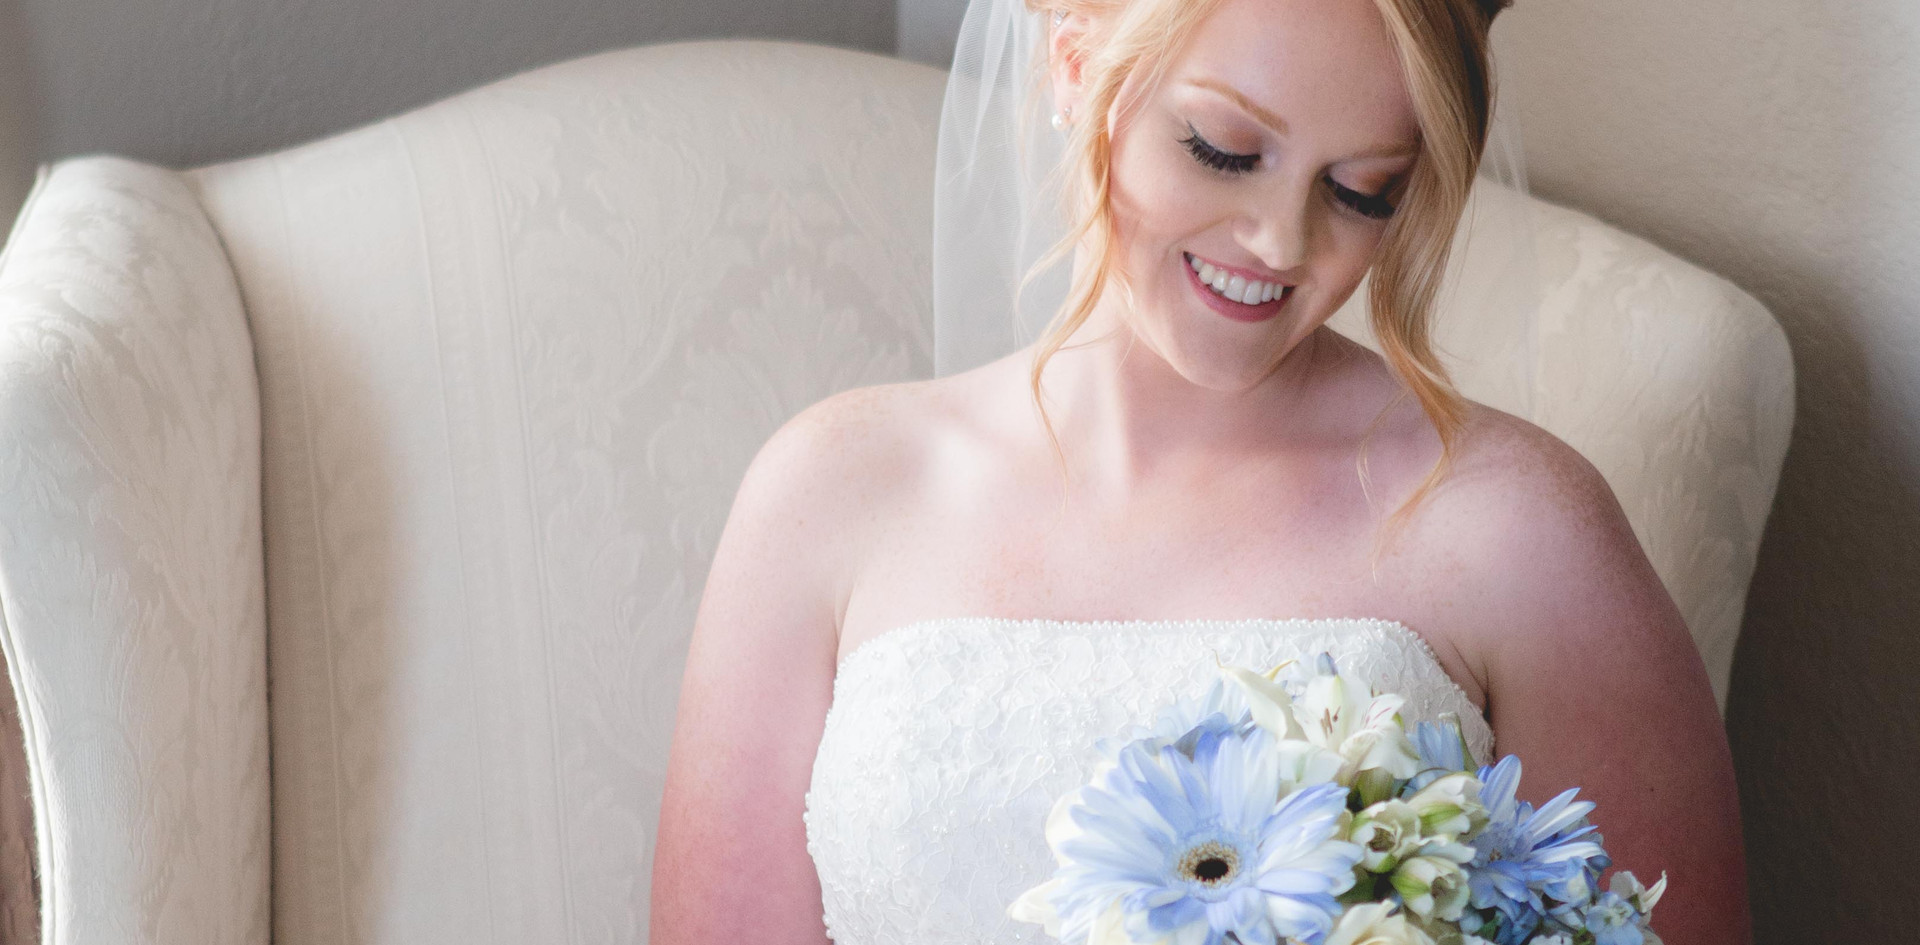 Blue and White bouquet and Bride